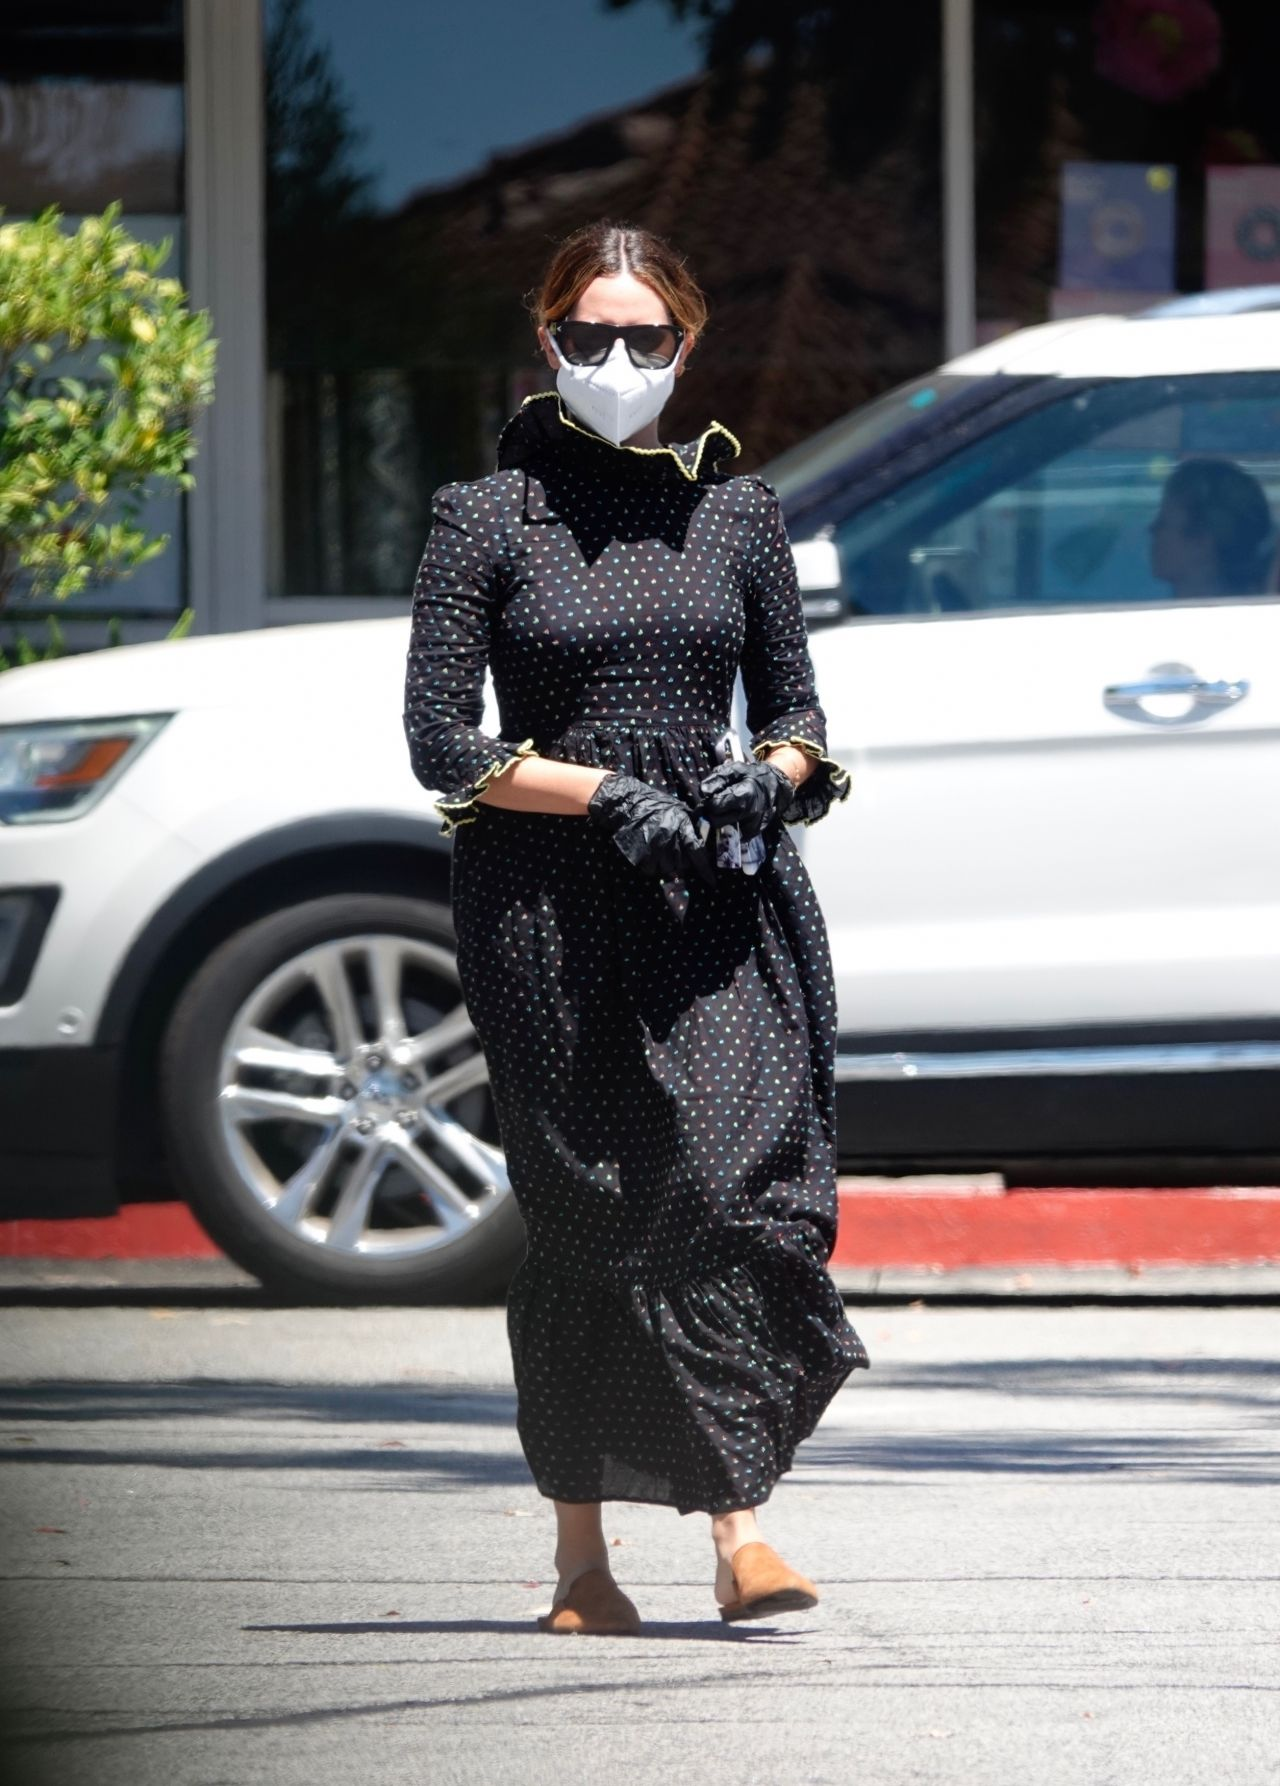 ashley-tisdale-in-doen-dress-out-in-los-angeles-august-11-2020